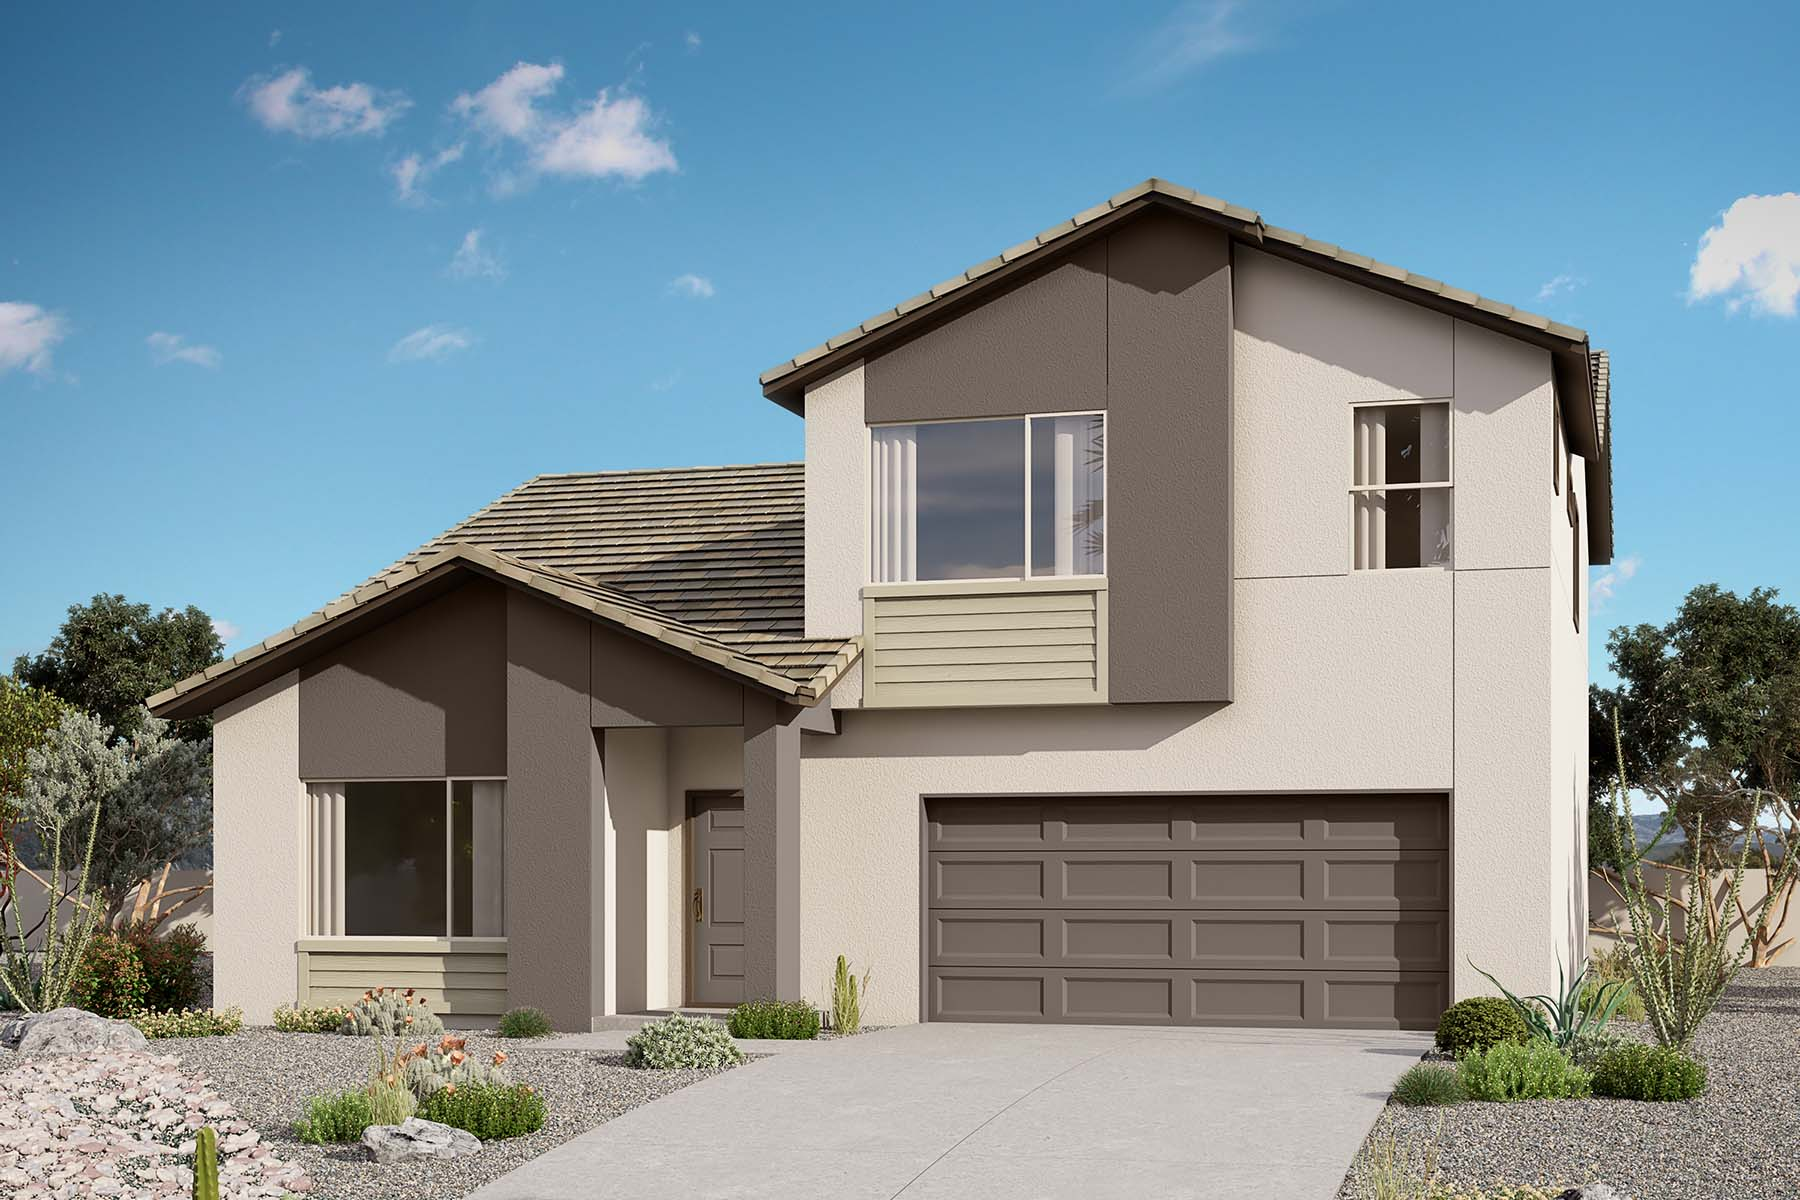 Sinclair Plan  at Solano at Sienna Hills in Buckeye Arizona by Mattamy Homes